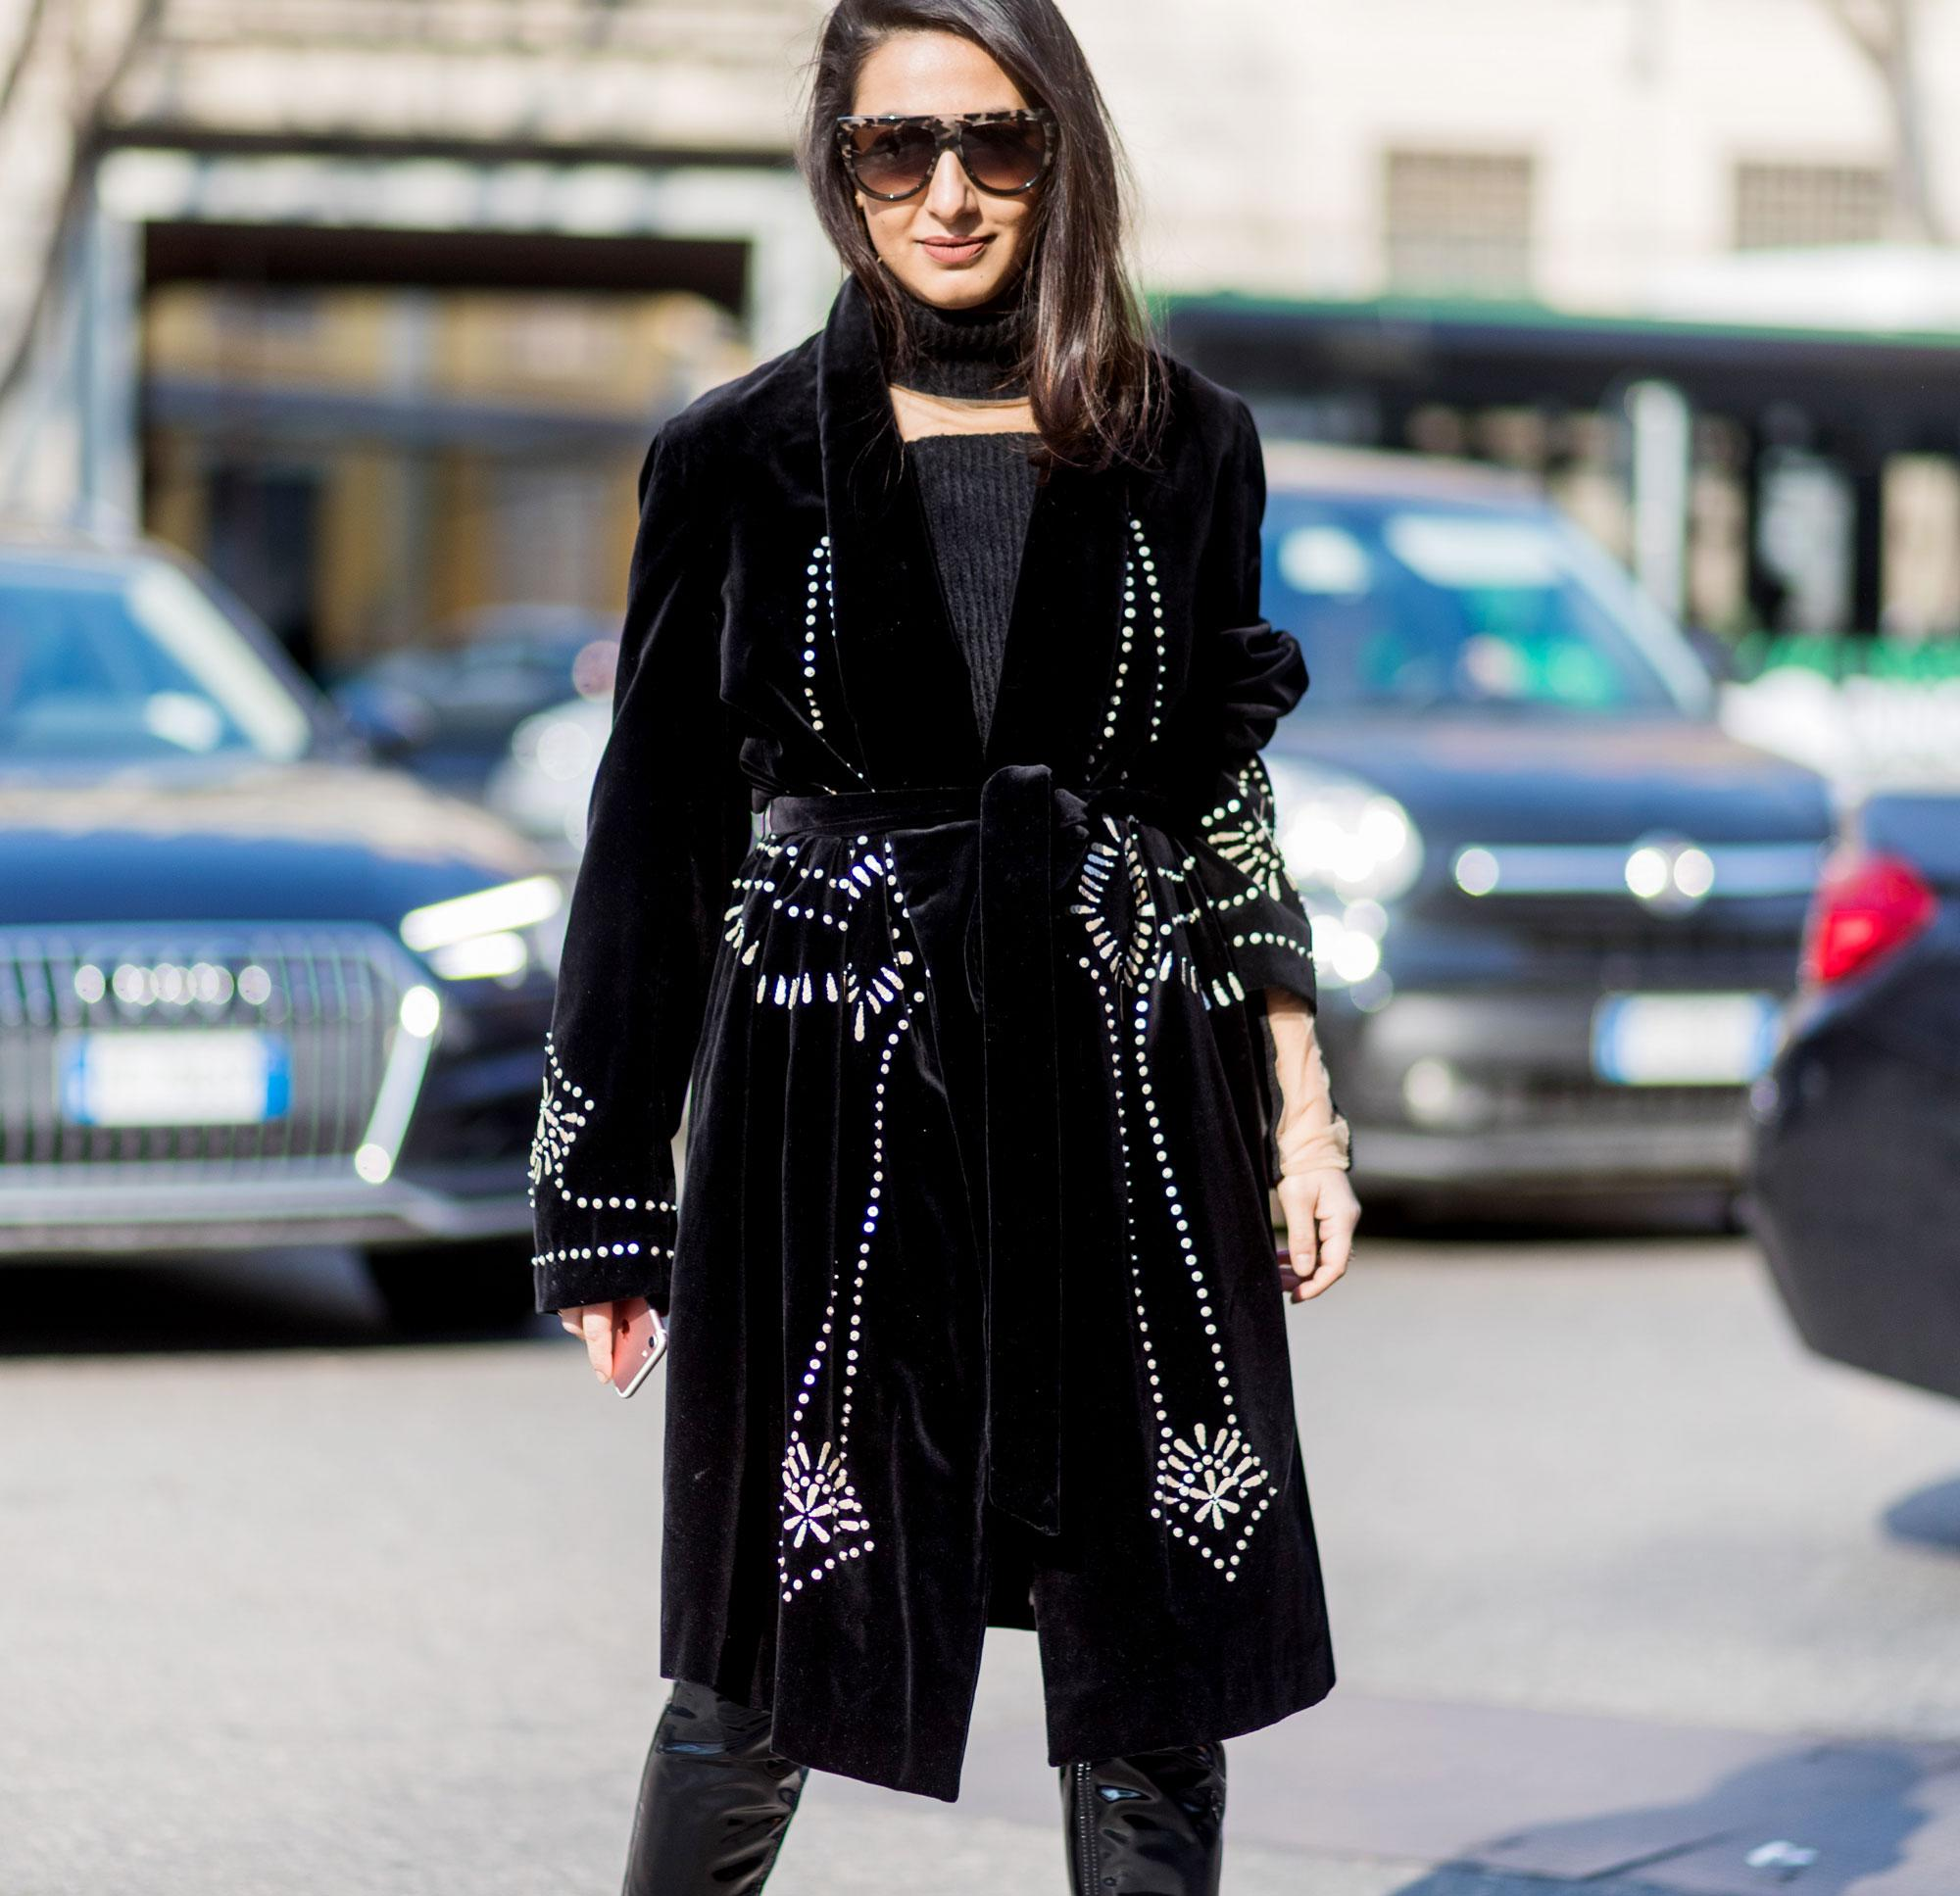 Winter Fashion Trends Must Have Black Velvet Coats for 2018